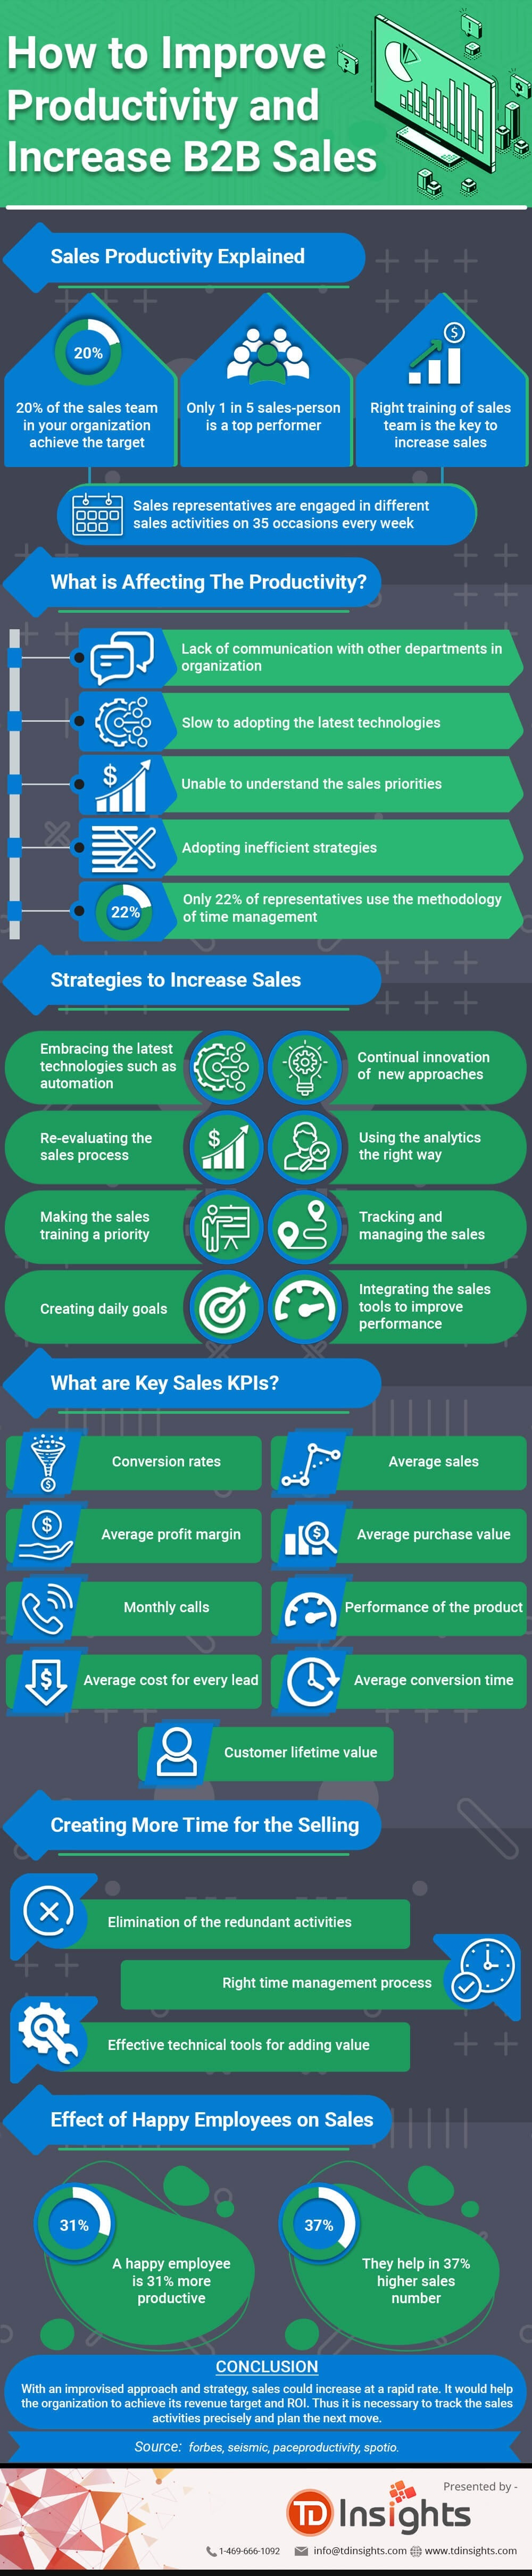 How to Improve Productivity and Increase B2B Sales #infographic #infographic